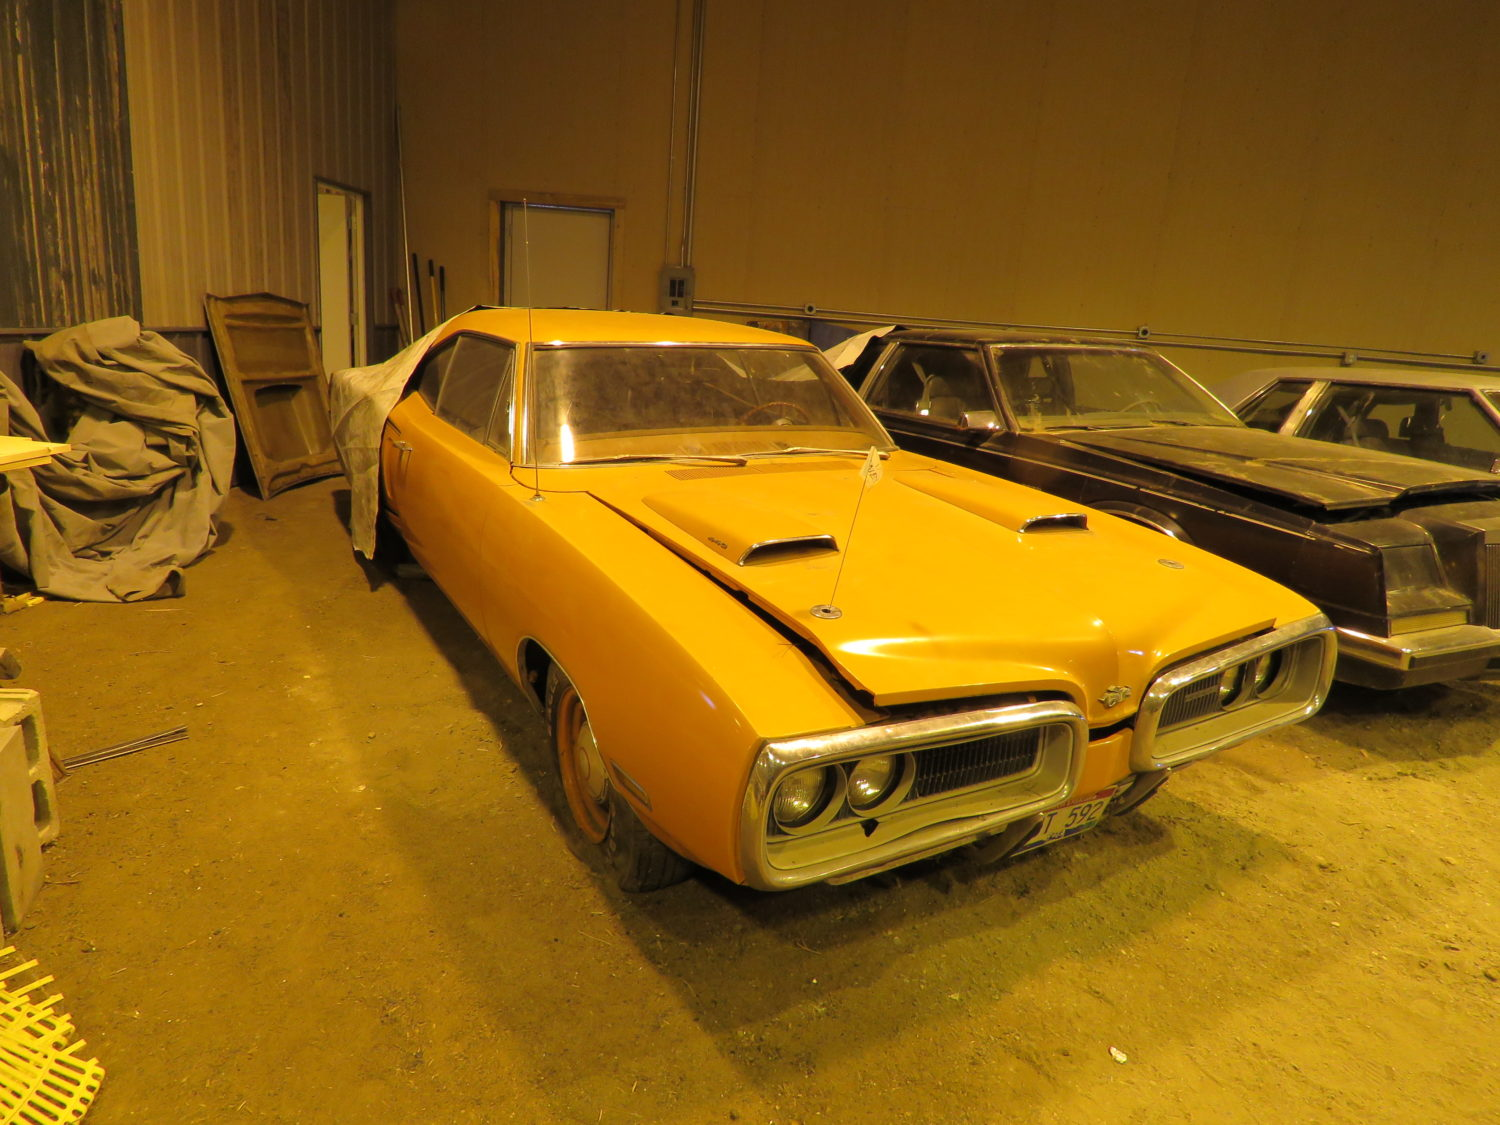 Online Car Auction >> The Rietz Mopar Collection Auction Official Results - June 9, 2018 | VanDerBrink Auctions